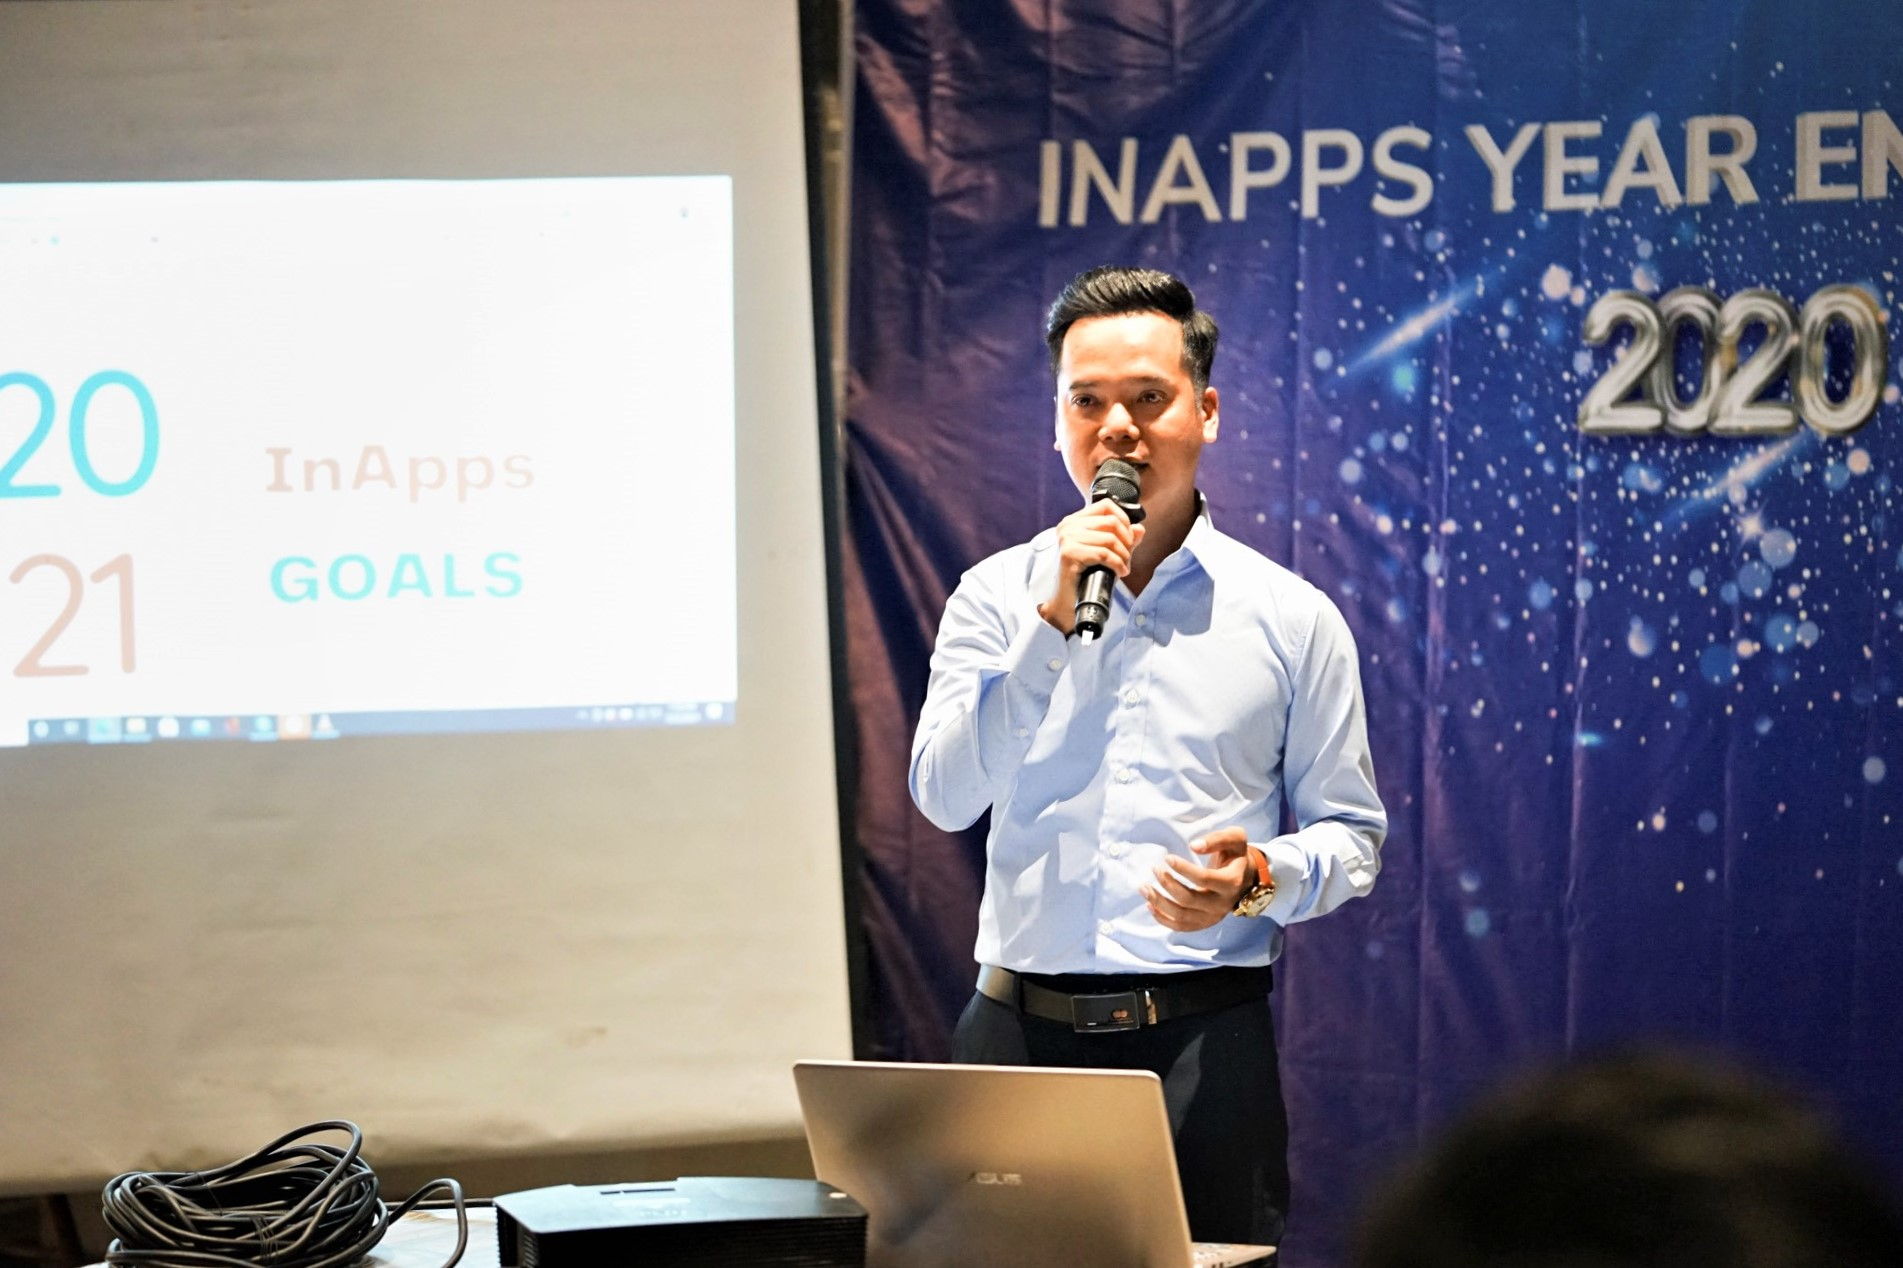 inapps-people